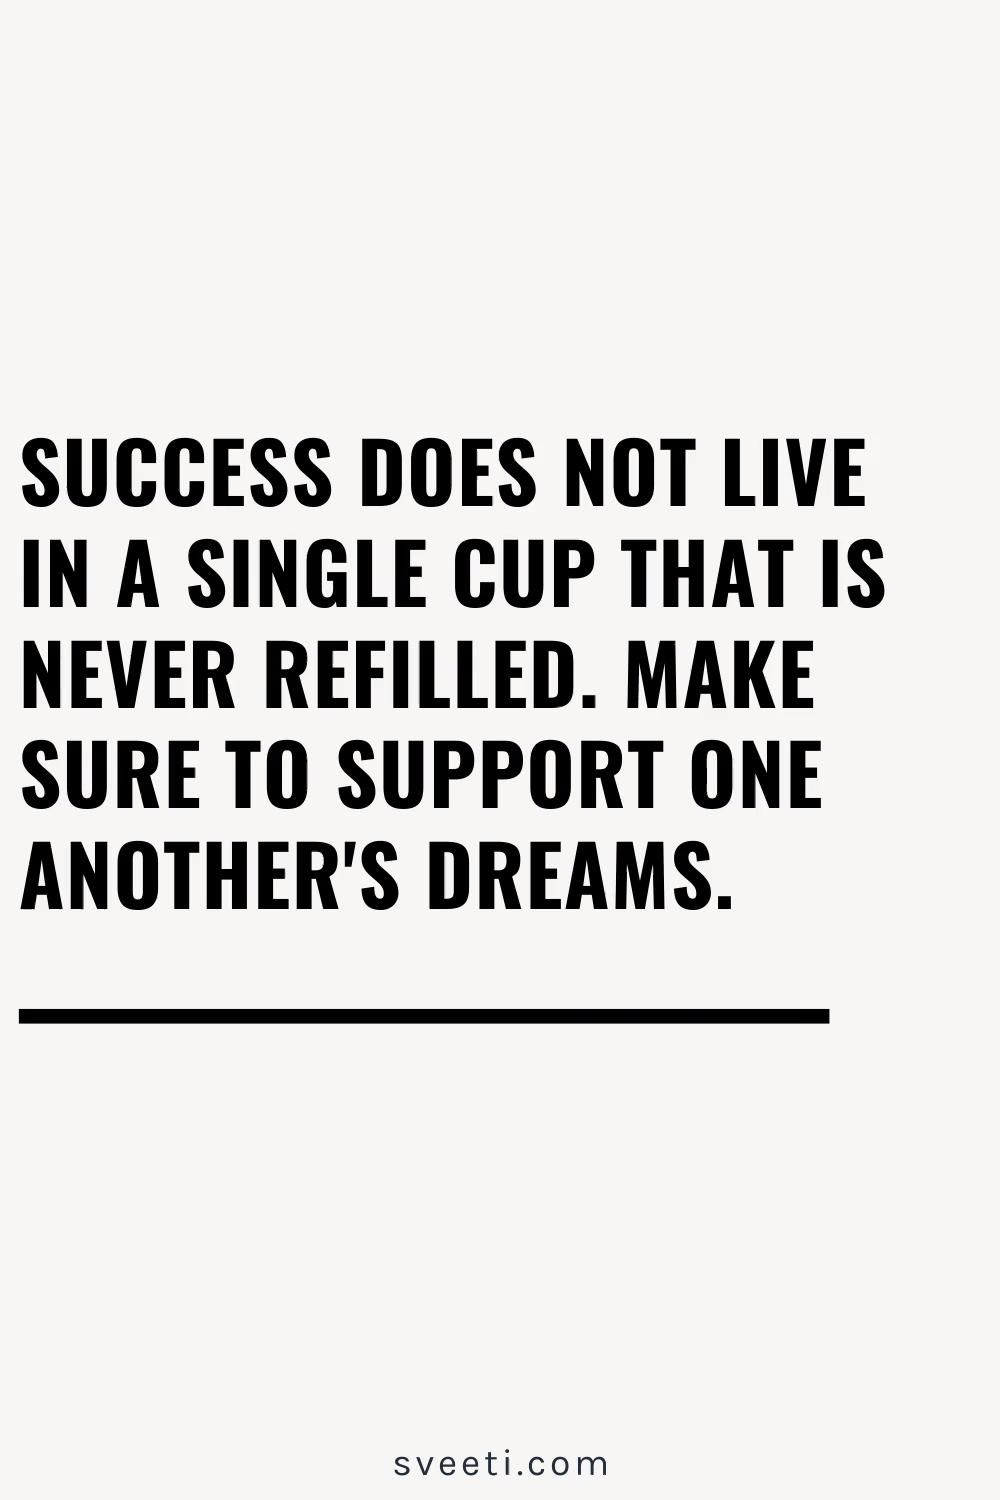 Success for All Quote, Empowered Women, Empower Women.